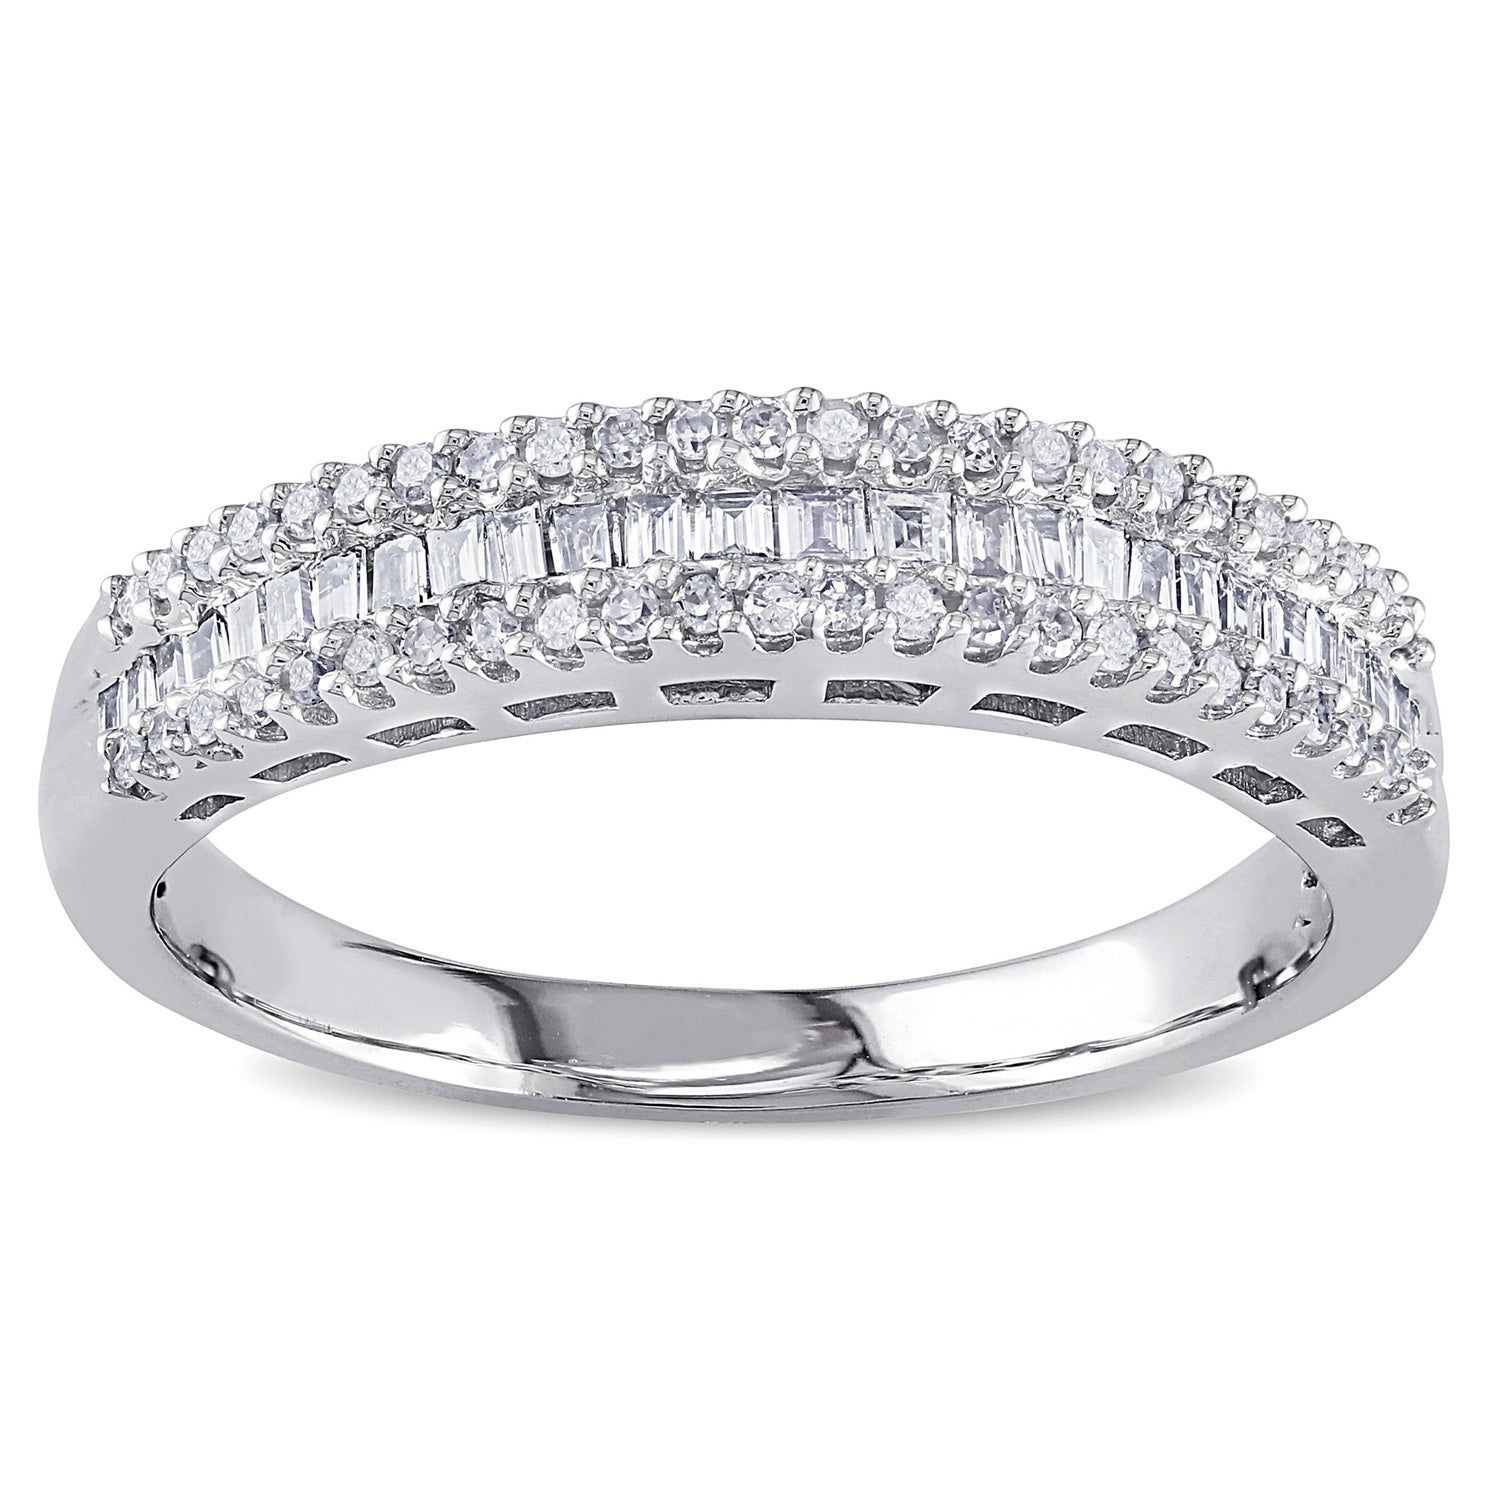 Miadora 14k White Gold 1/3ct Tdw Baguette Diamond Anniversary Band With Regard To Most Up To Date Baguette And Round Diamond Multi Row Anniversary Ring In White Gold (View 14 of 25)